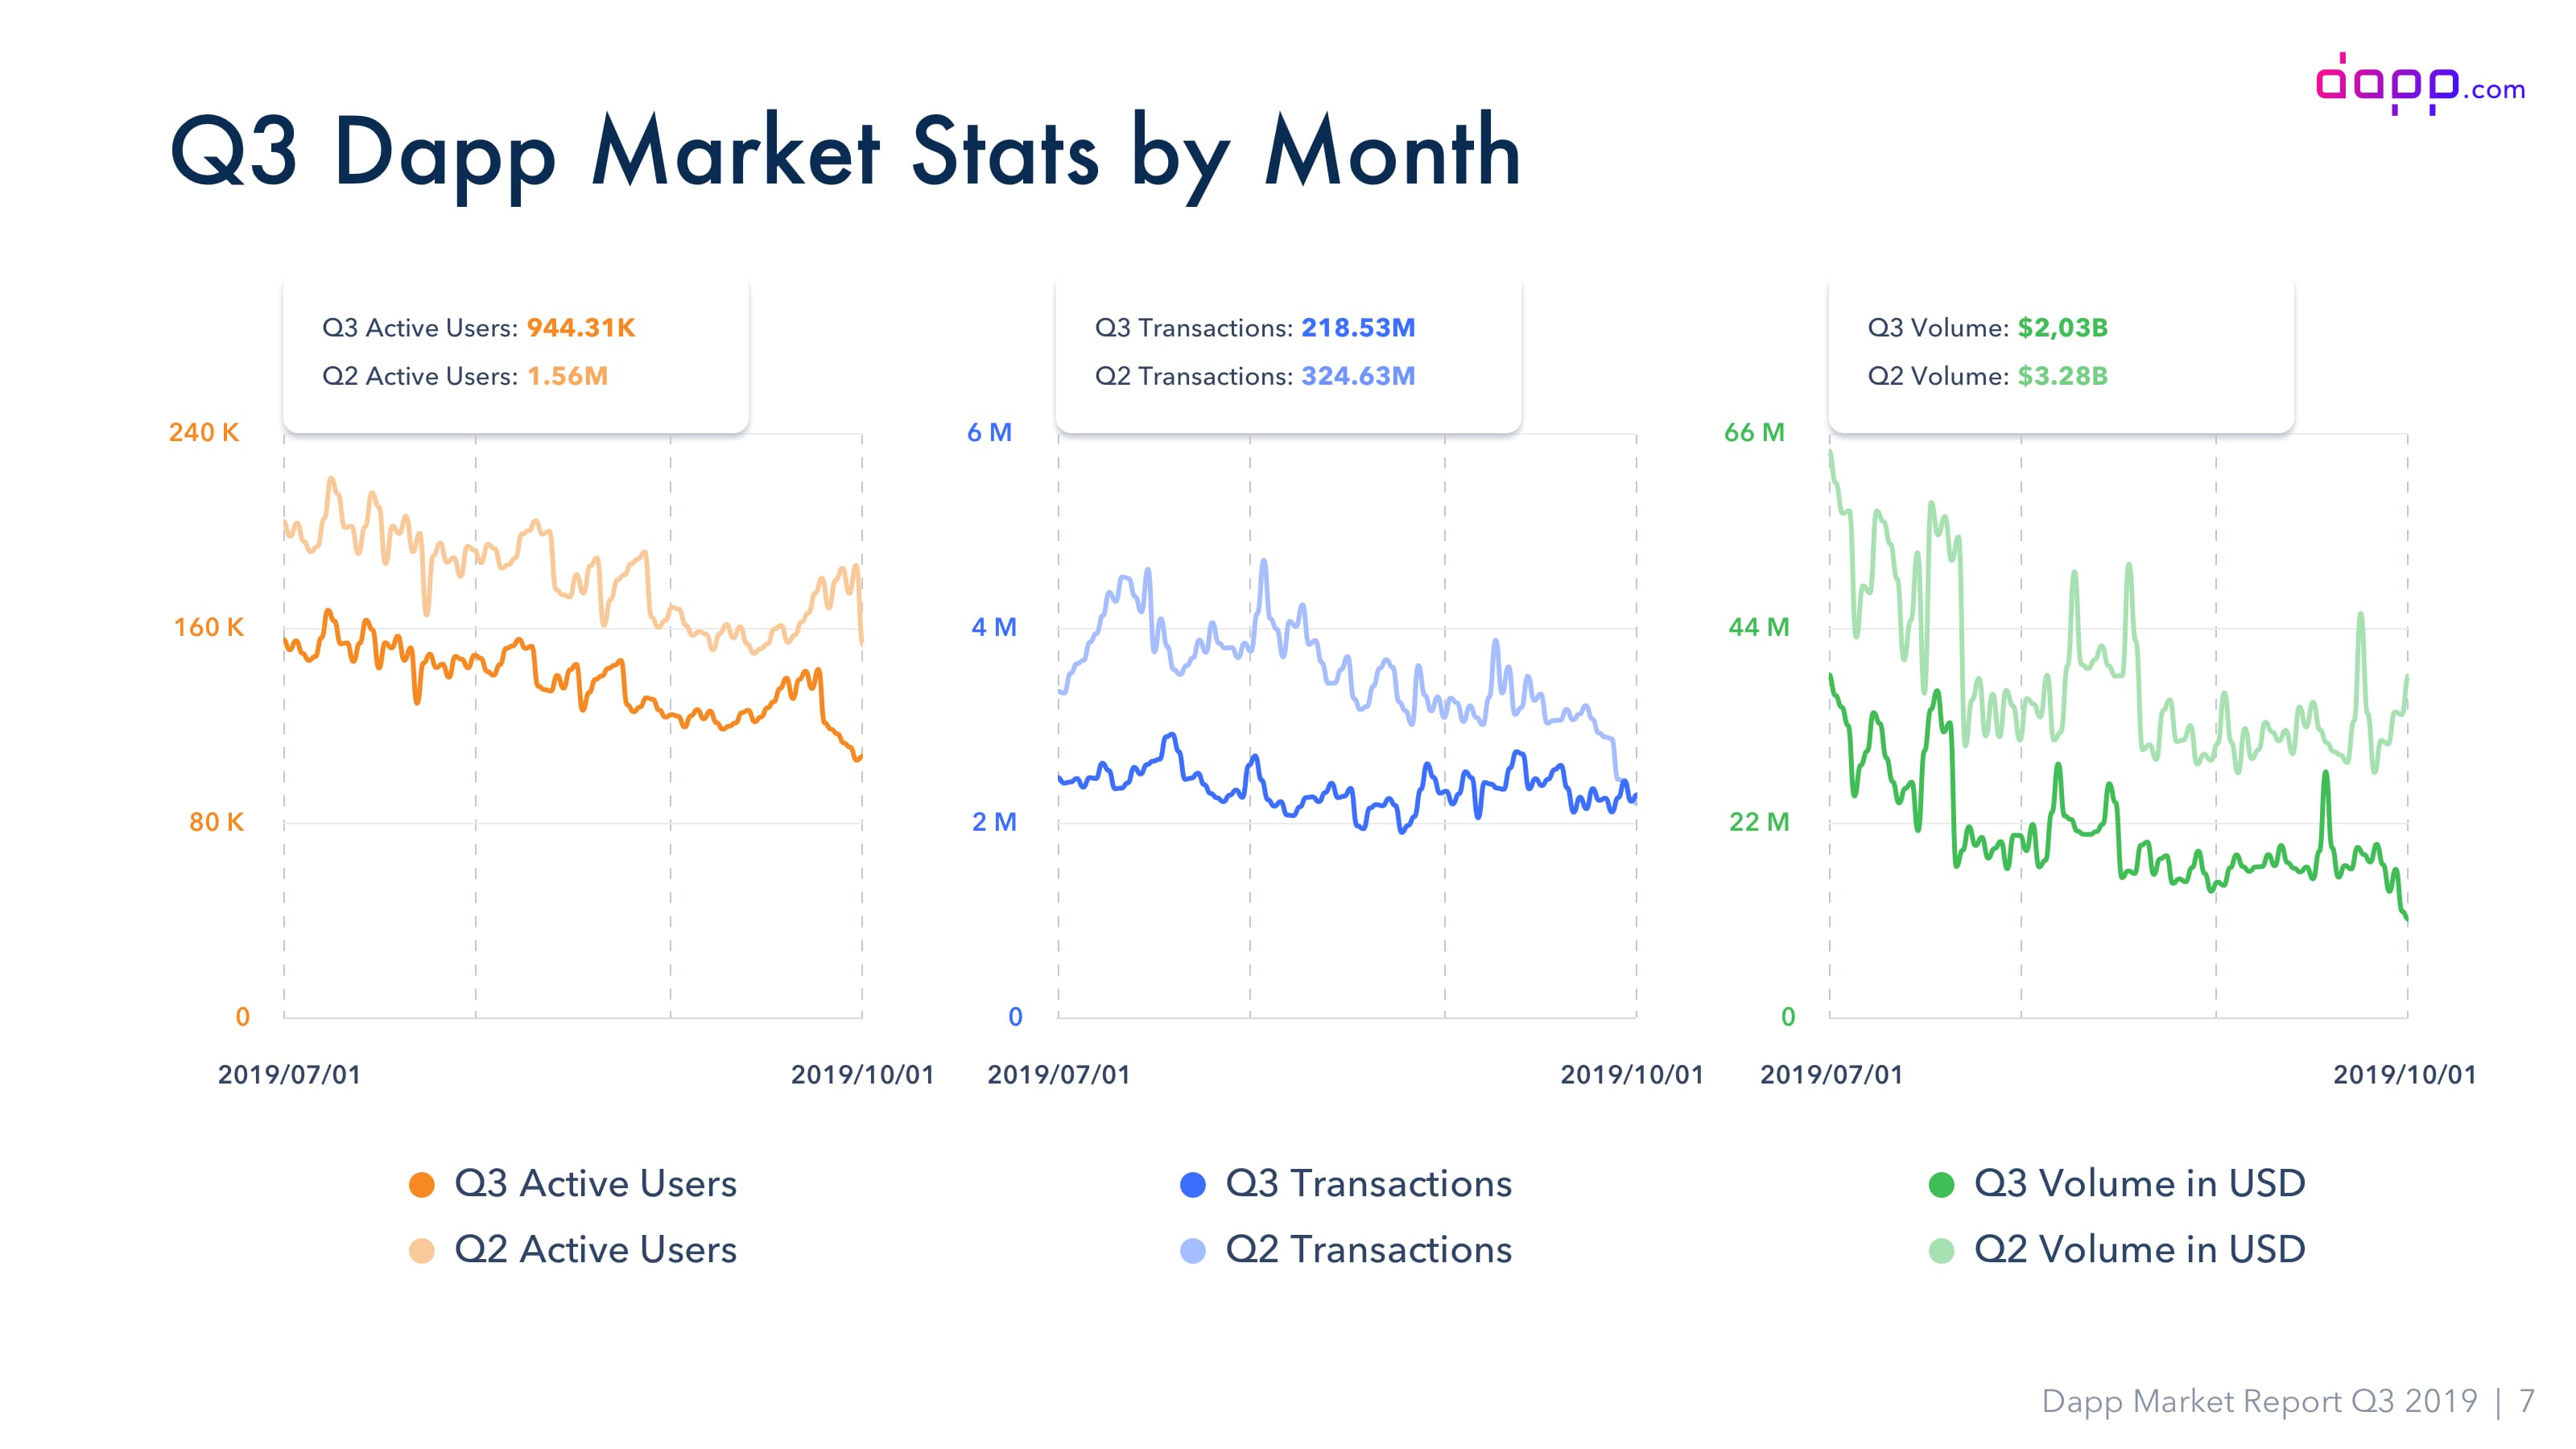 Dapps market falls 40% in the third quarter despite record users in Ethereum